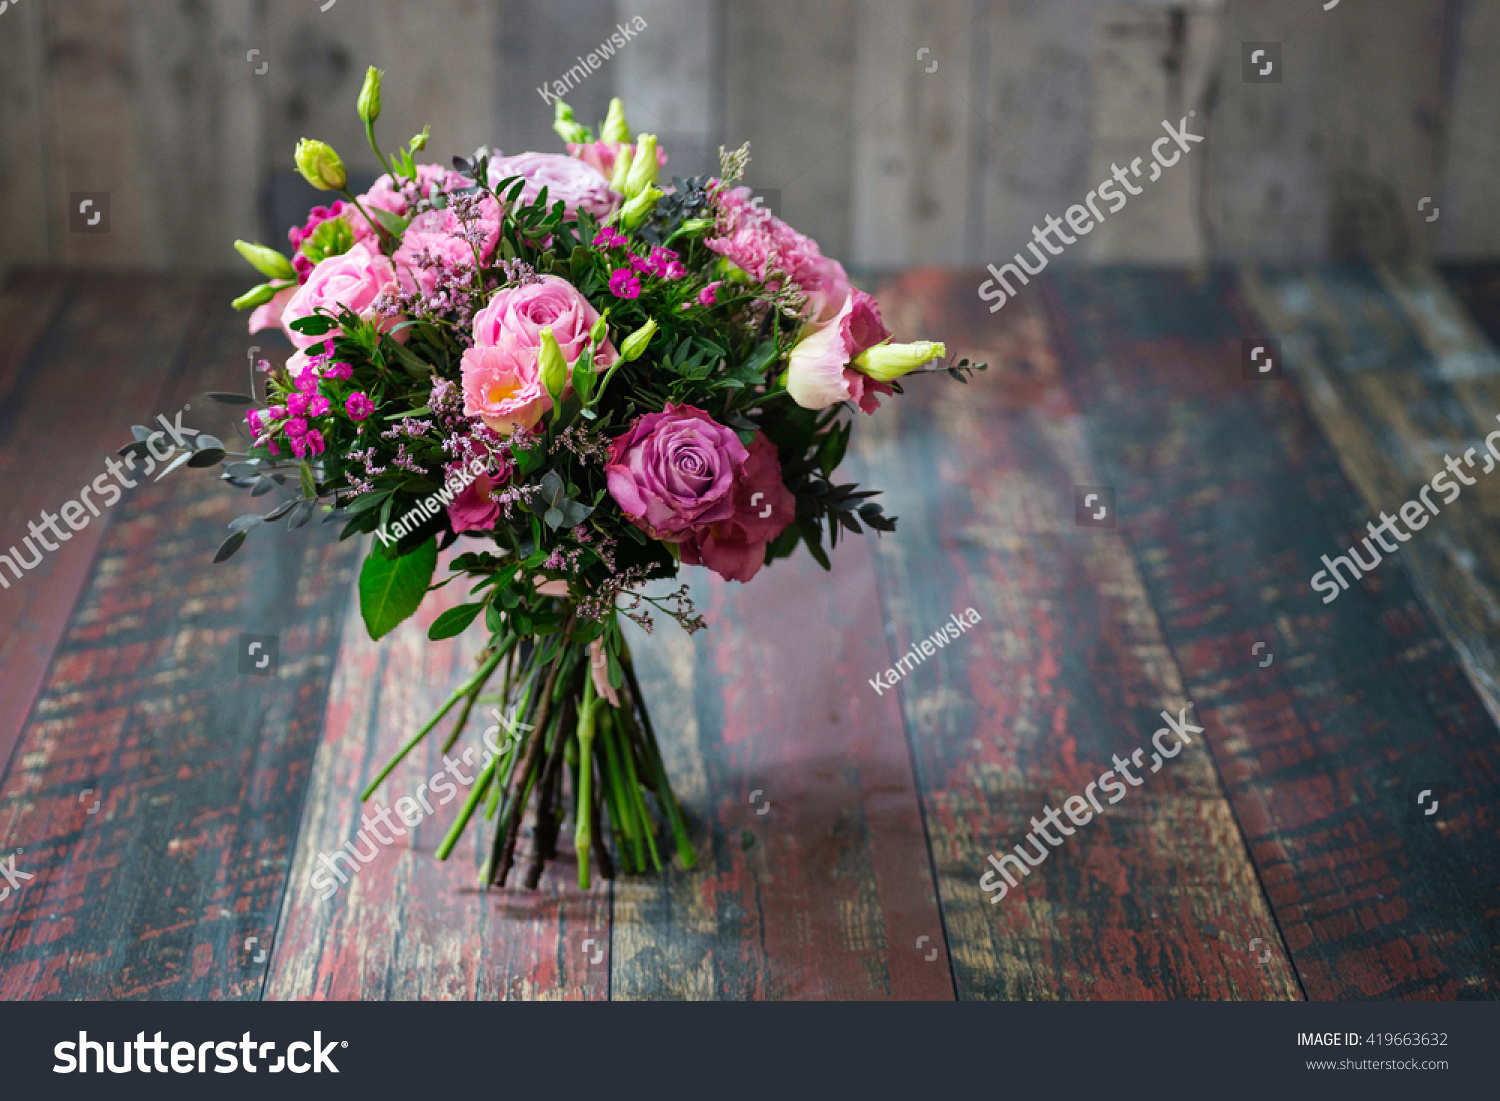 Rustic Wedding Bouquet Roses Lisianthus Flowers Stock Photo Royalty